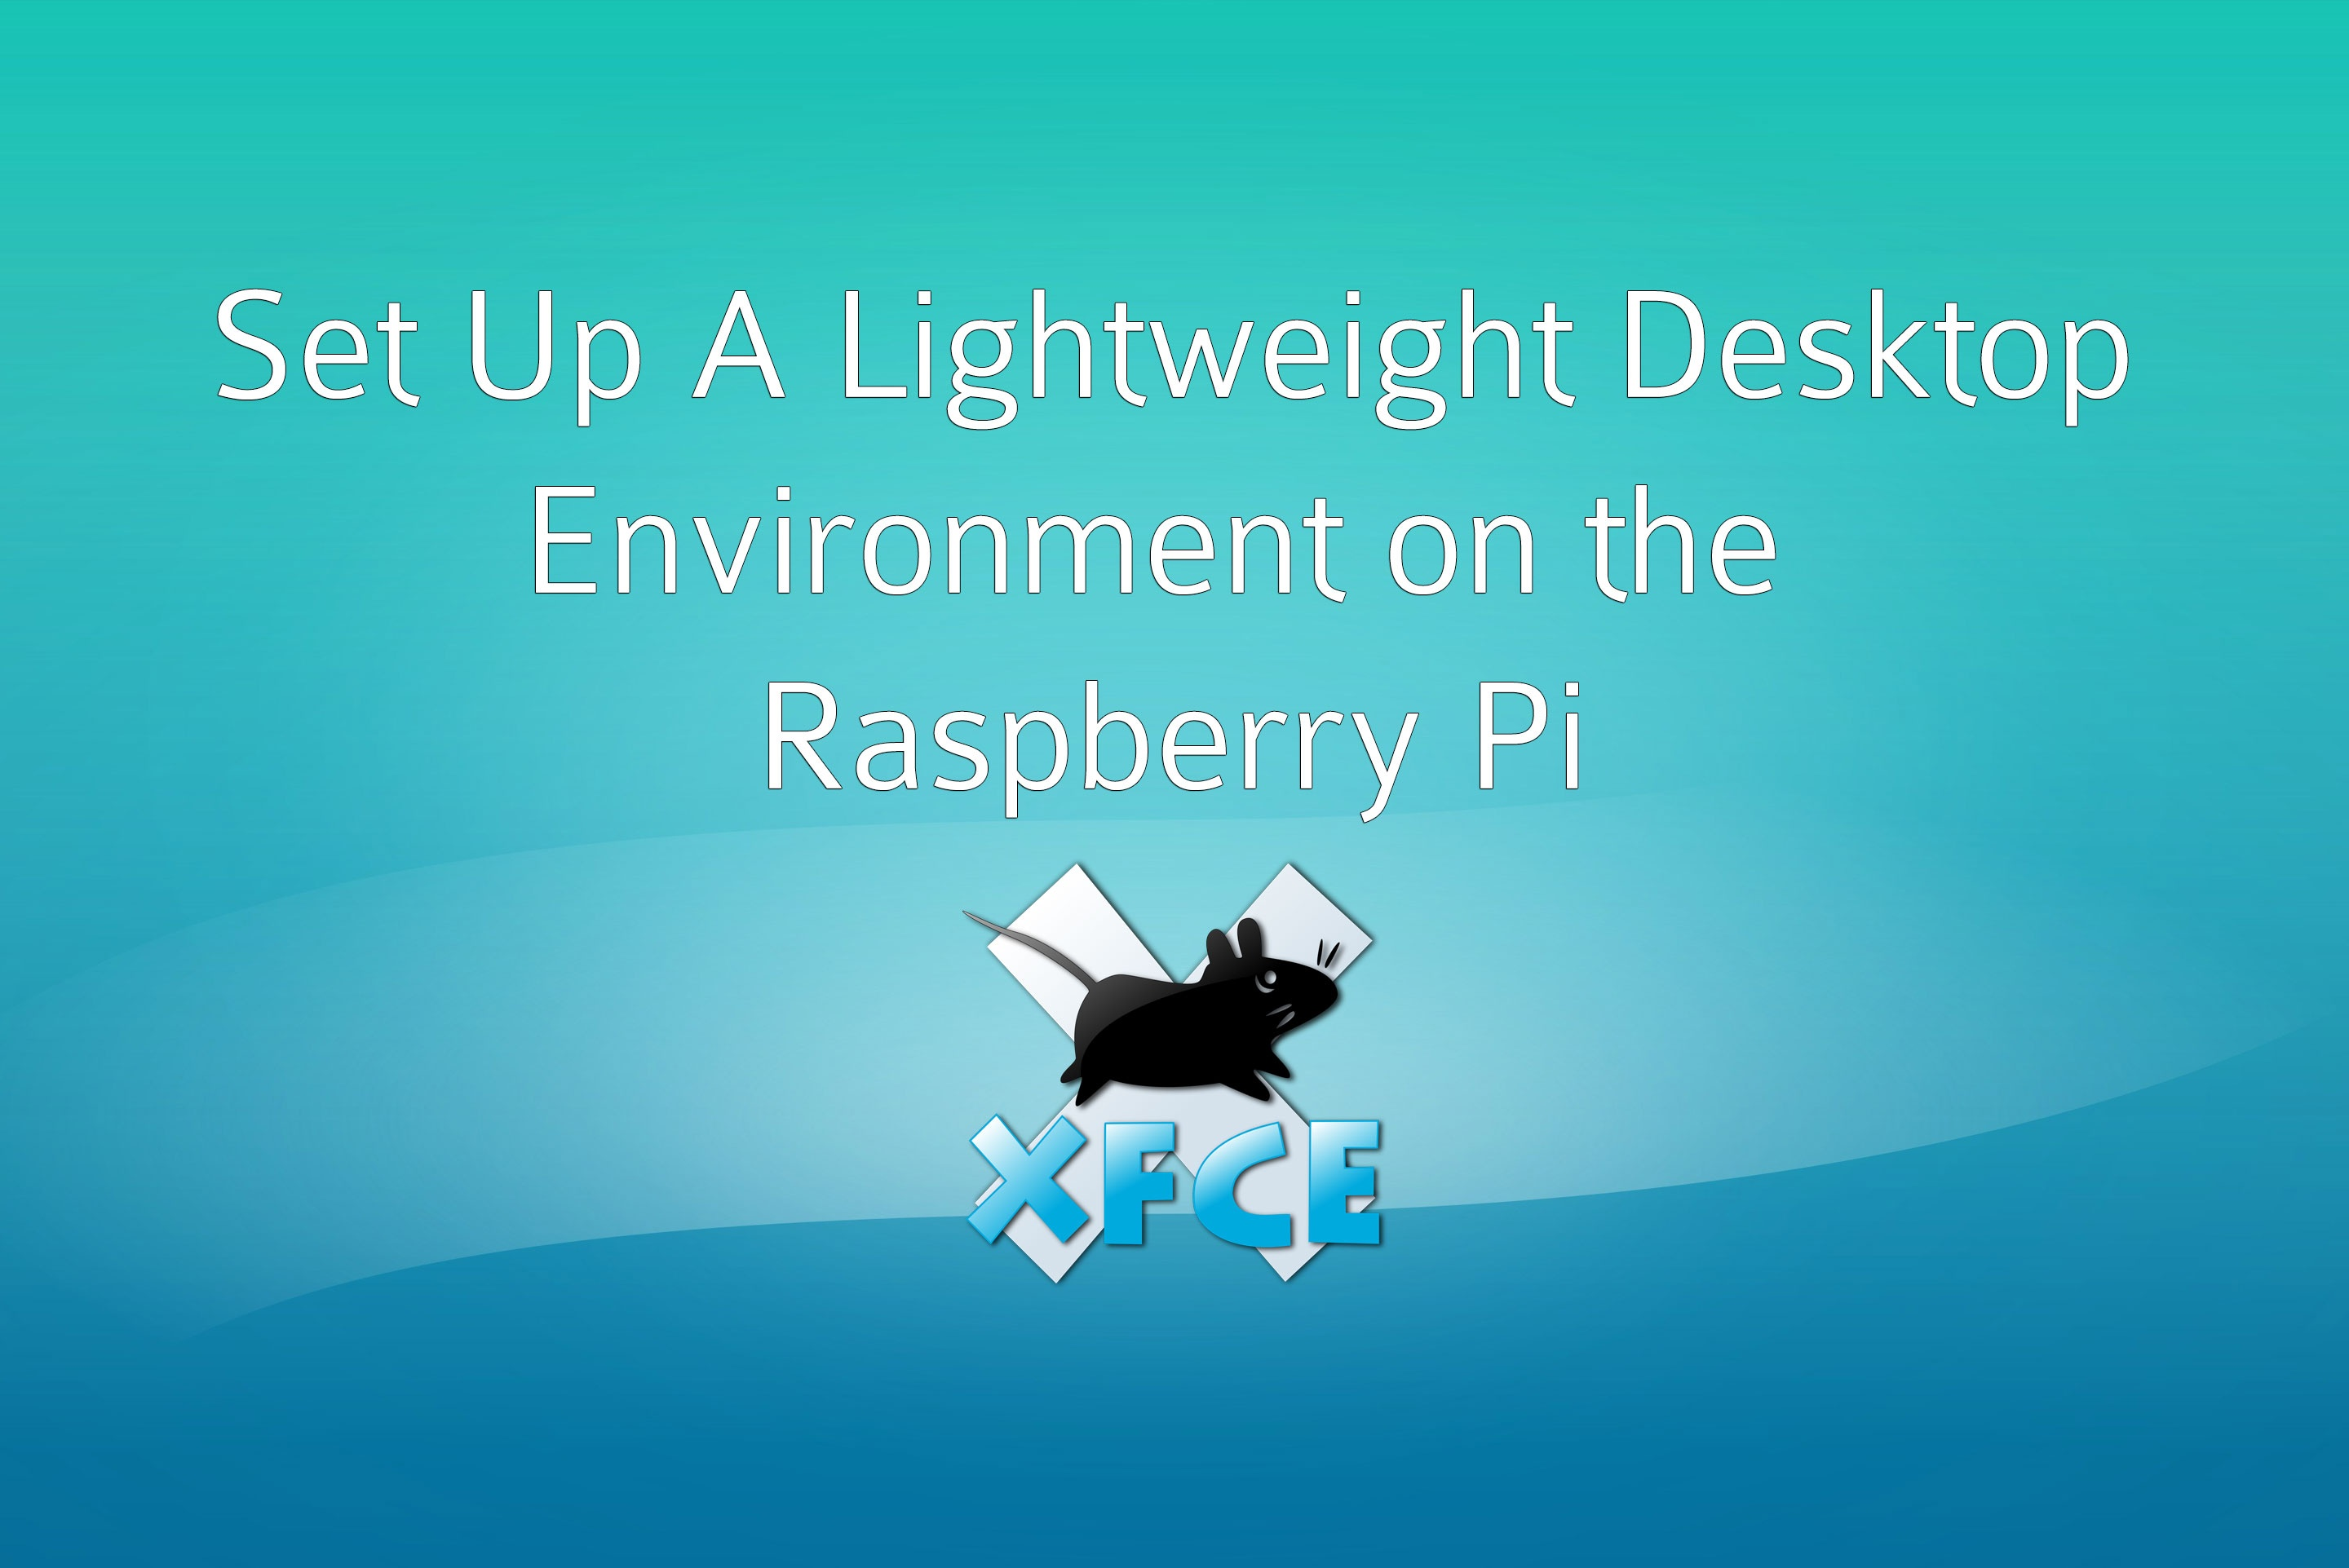 Set up a Lightweight Desktop Environment on the Raspberry Pi with